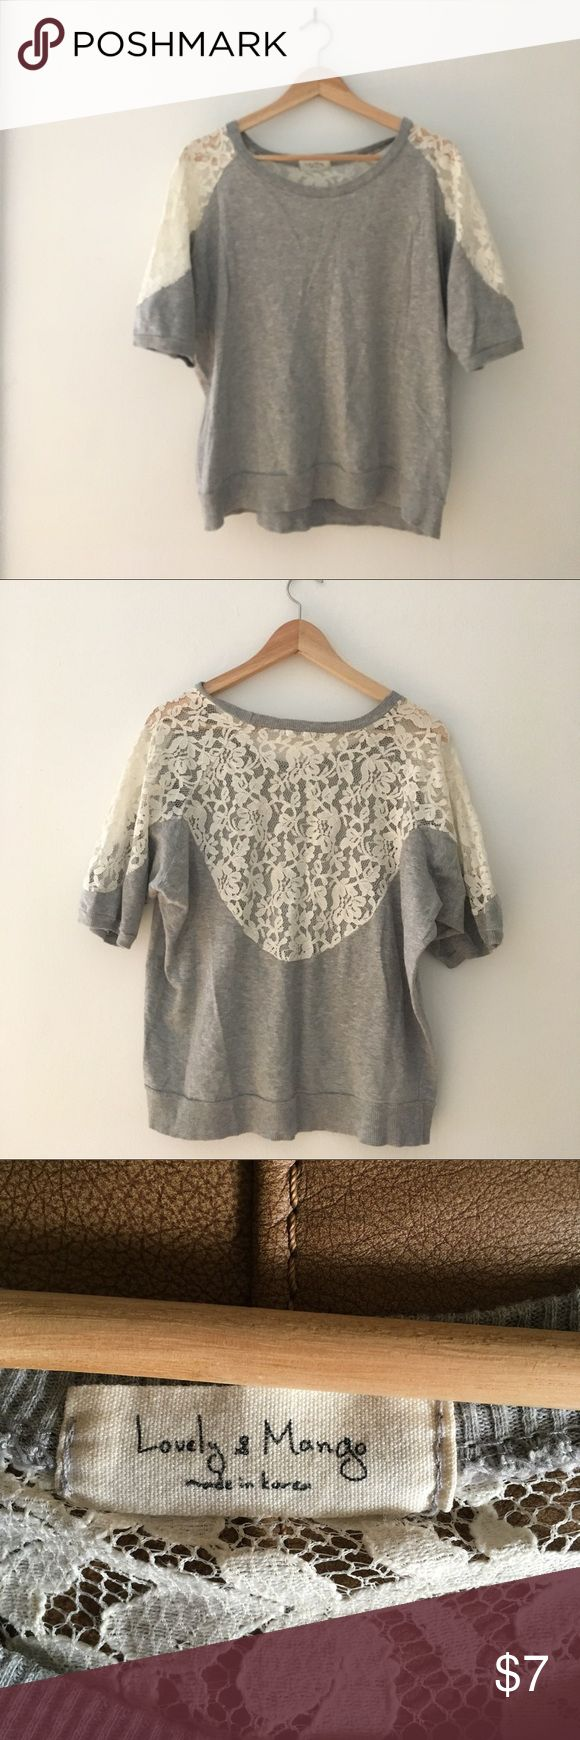 Lace Back Grey Tee Sz L This cute tee is grey with a white lace back. No size tag, but like a Sz L. Lovely and Mango brand, bought in Korea. lovely and mango Tops Tees - Short Sleeve